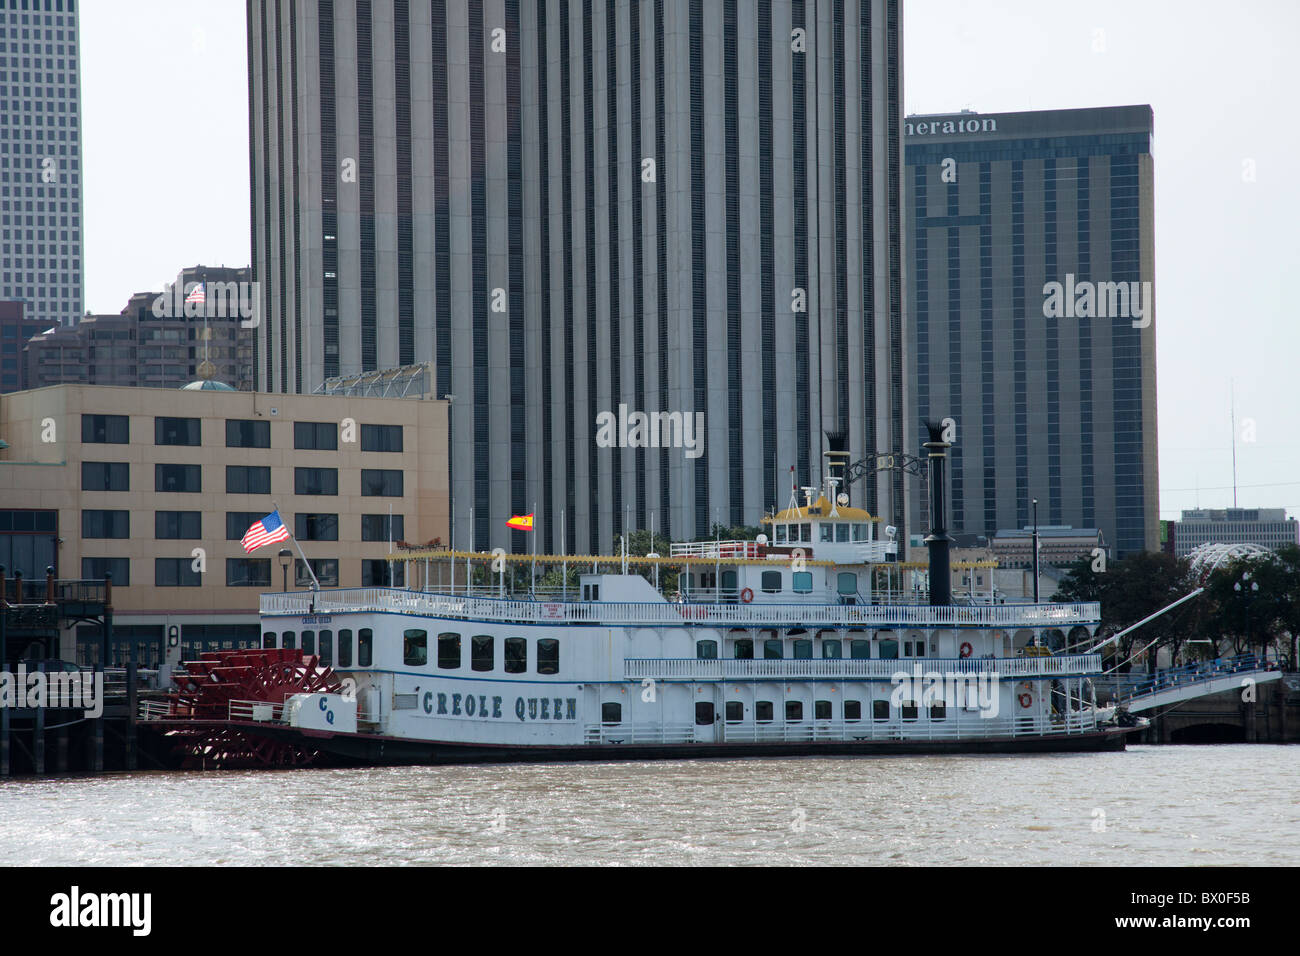 The Creole Queen entertains passengers on Mississippi River Cruises in New Orleans, Louisiana. - Stock Image